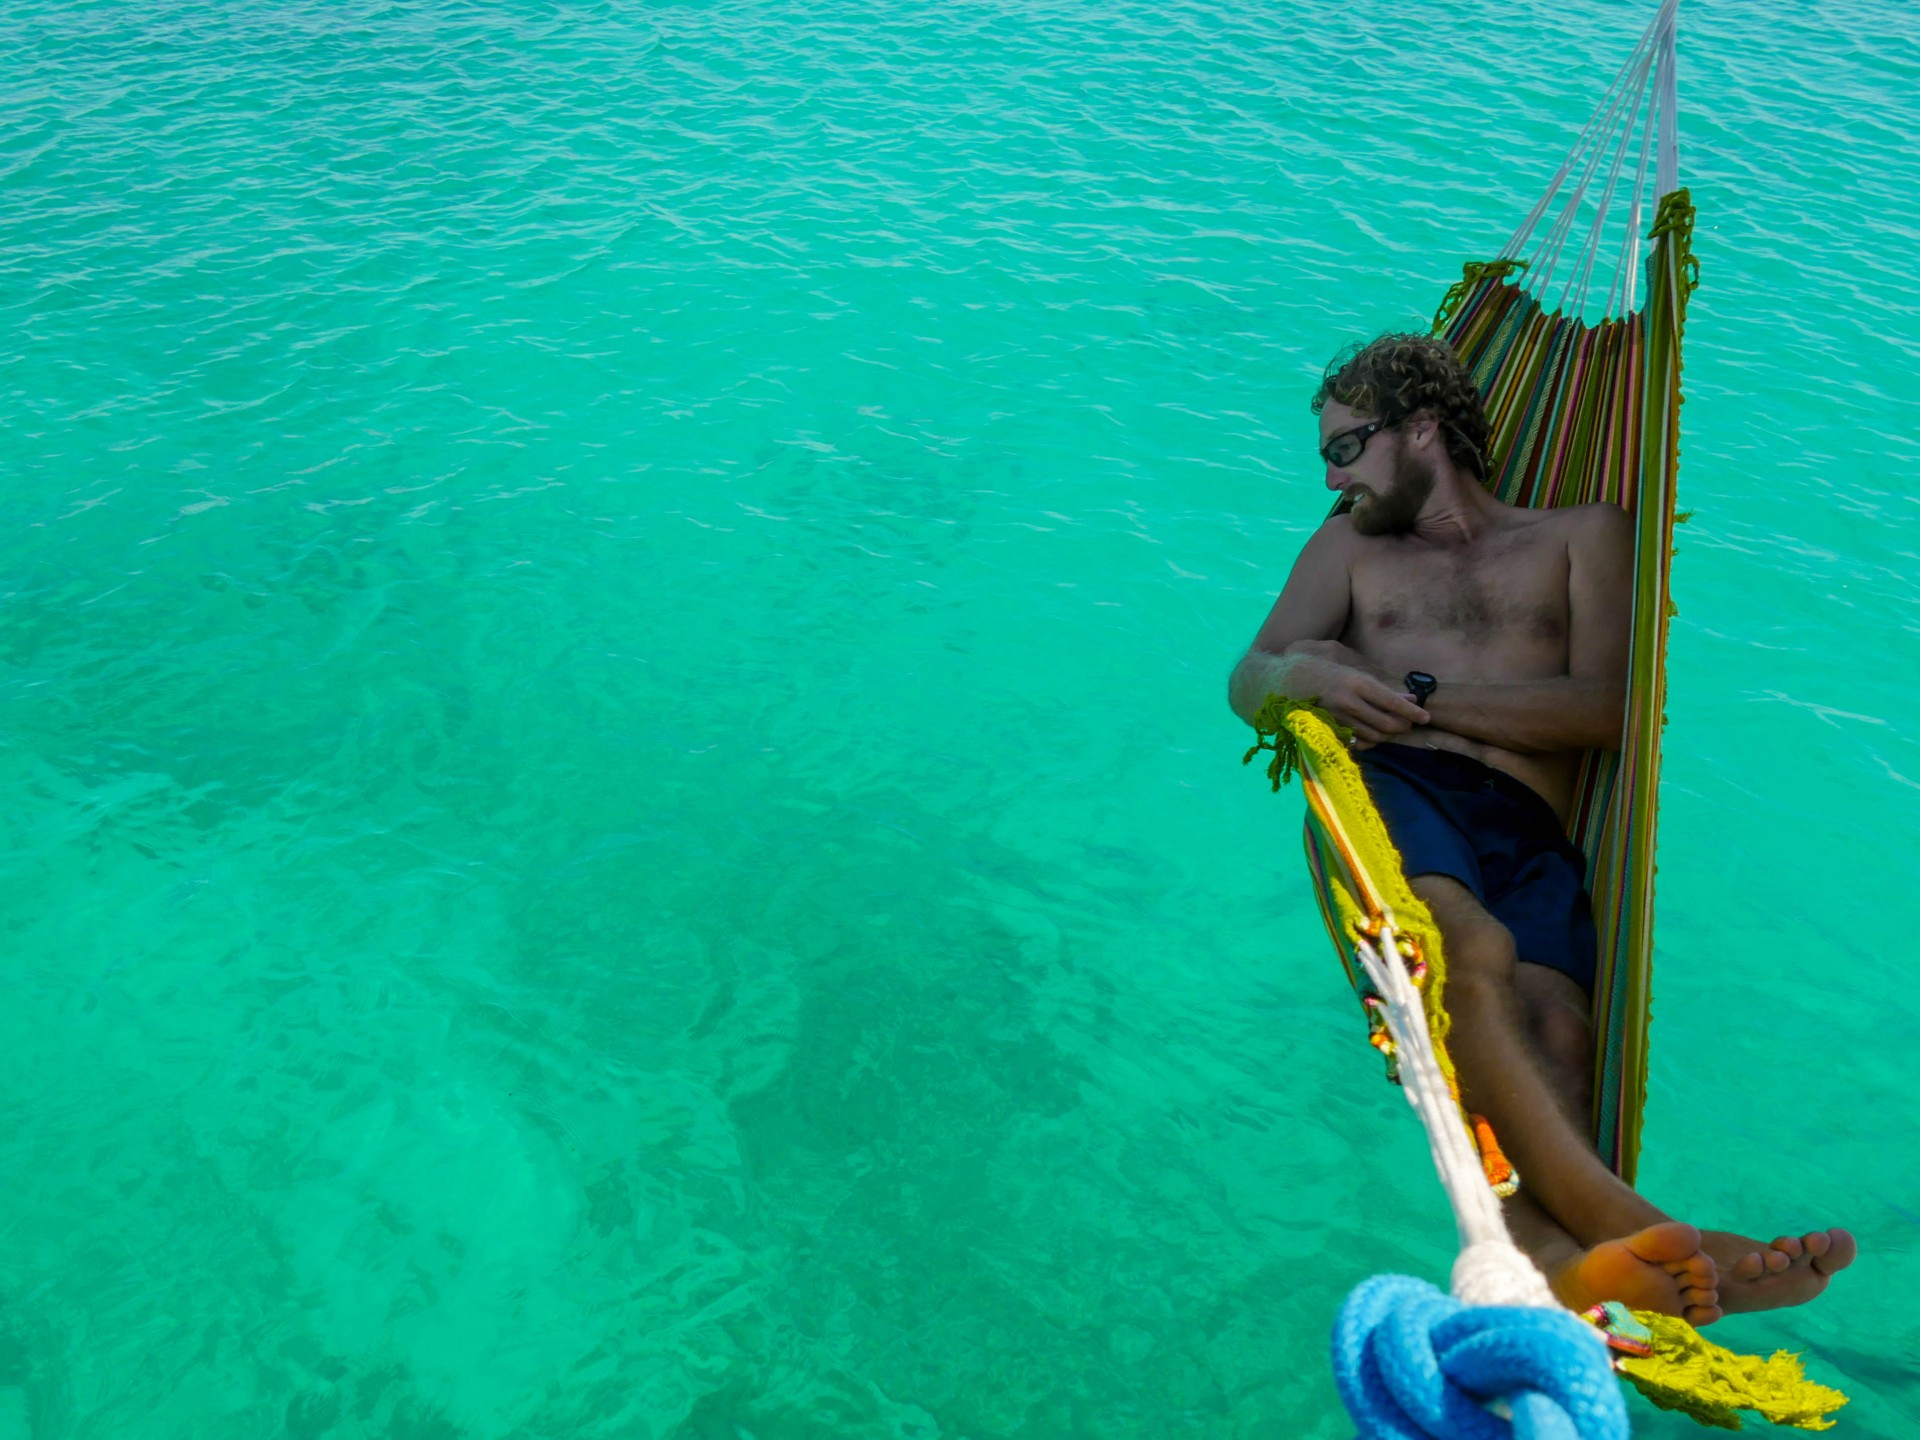 Josh set up our hammock and enjoyed the sliver of shade from the boom over the water.